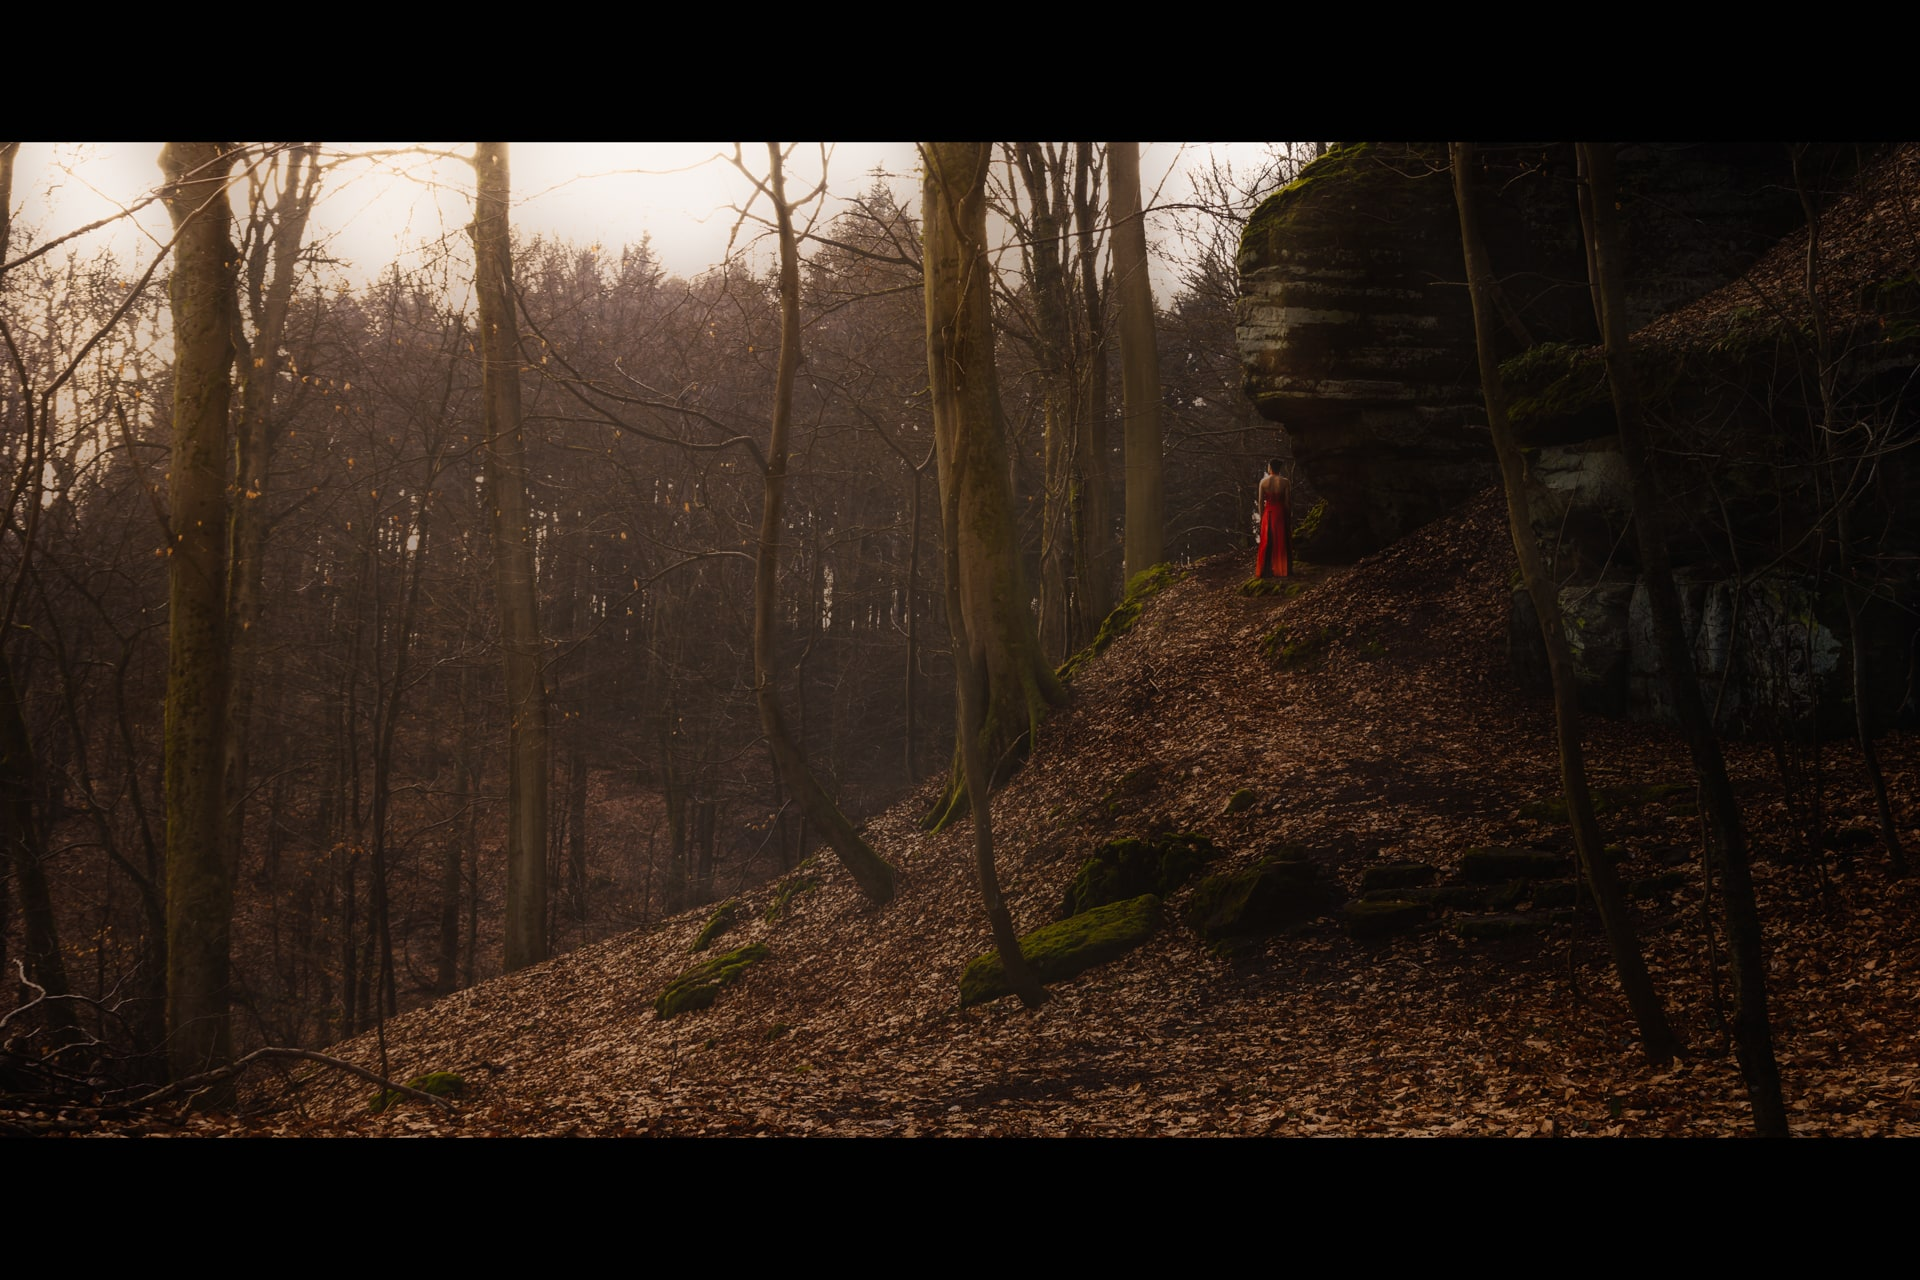 Portrait-Outdoor-Thionville-Red dress in forest-jpitois.fr-3